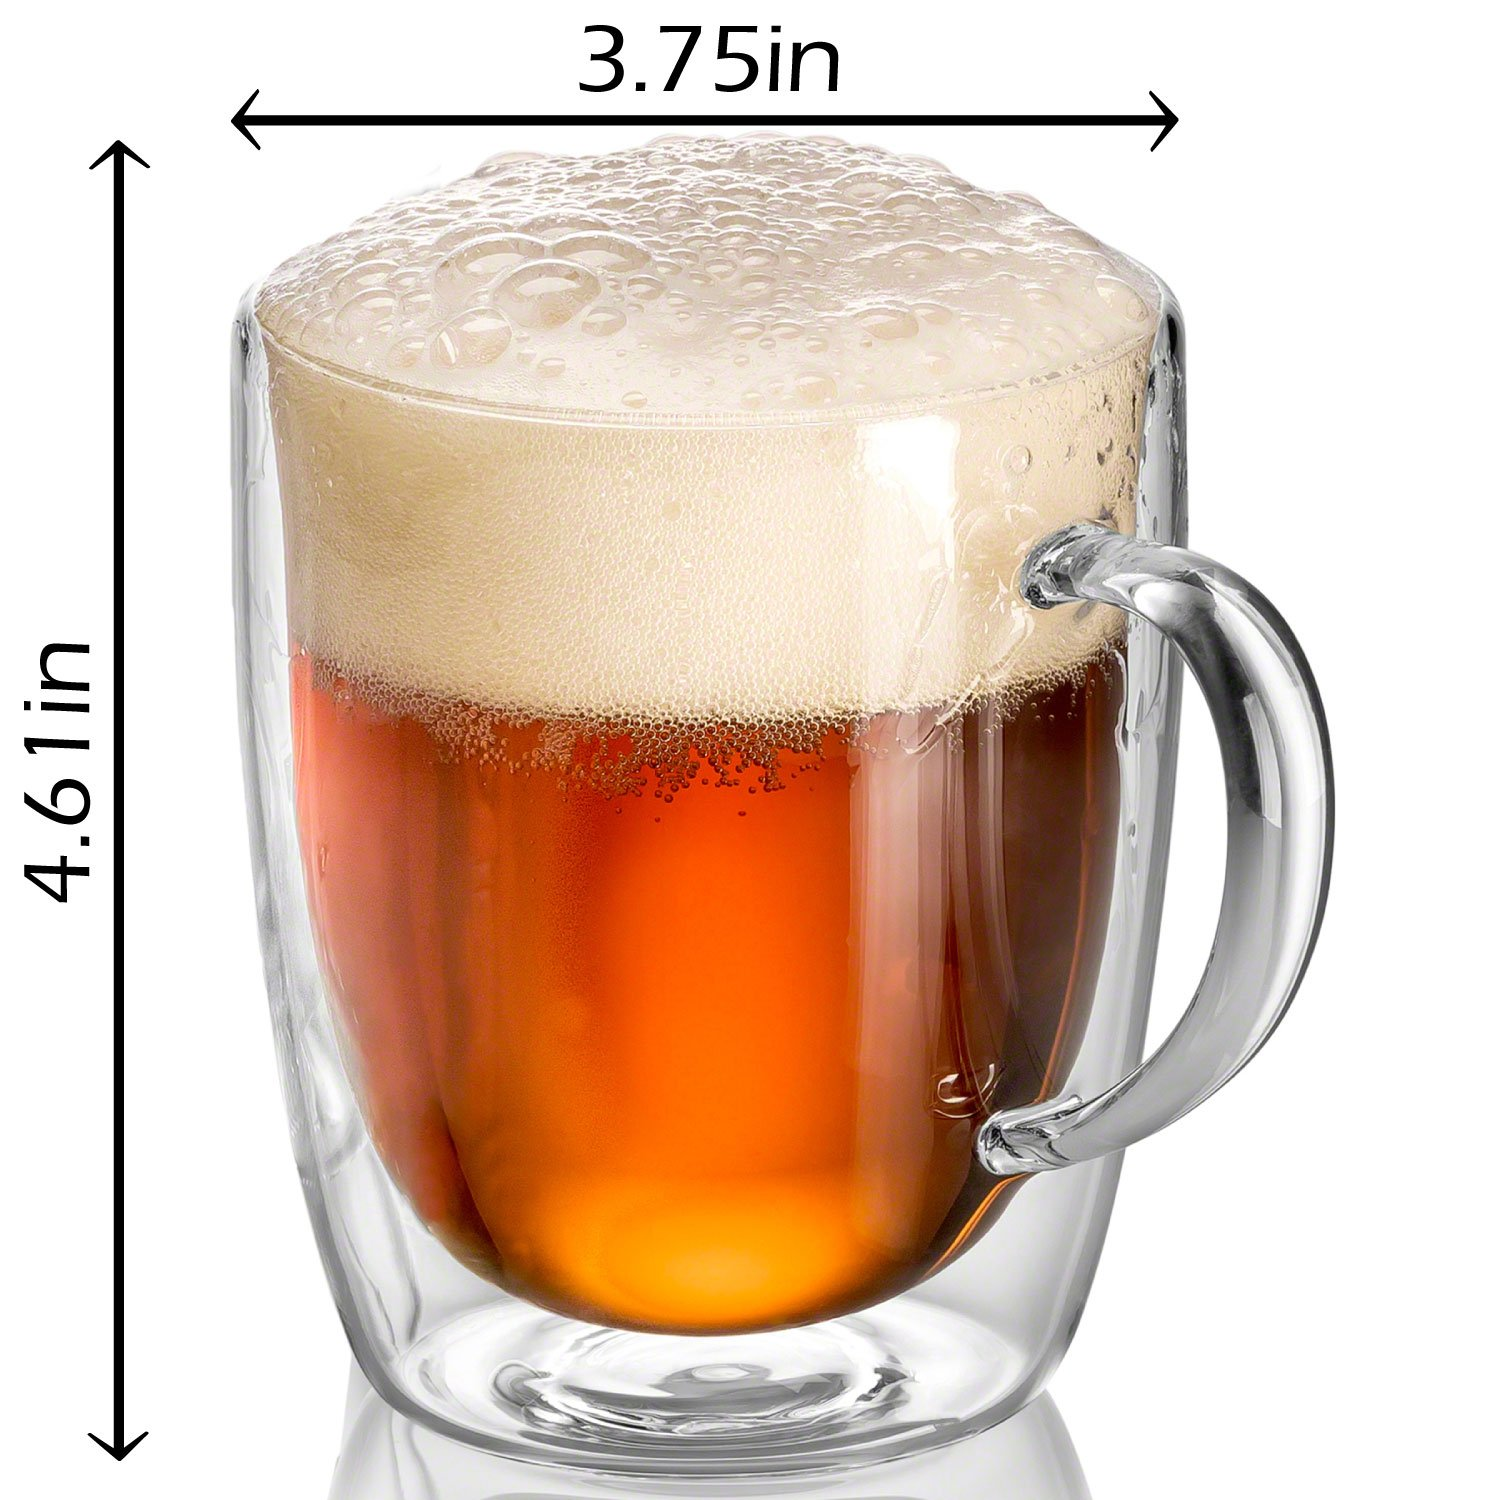 Pint Glasses - Double Wall Glass - Beer Mugs for Freezer - Dishwasher Safe - 18 oz (Set of 2) by JECOBI (Image #3)